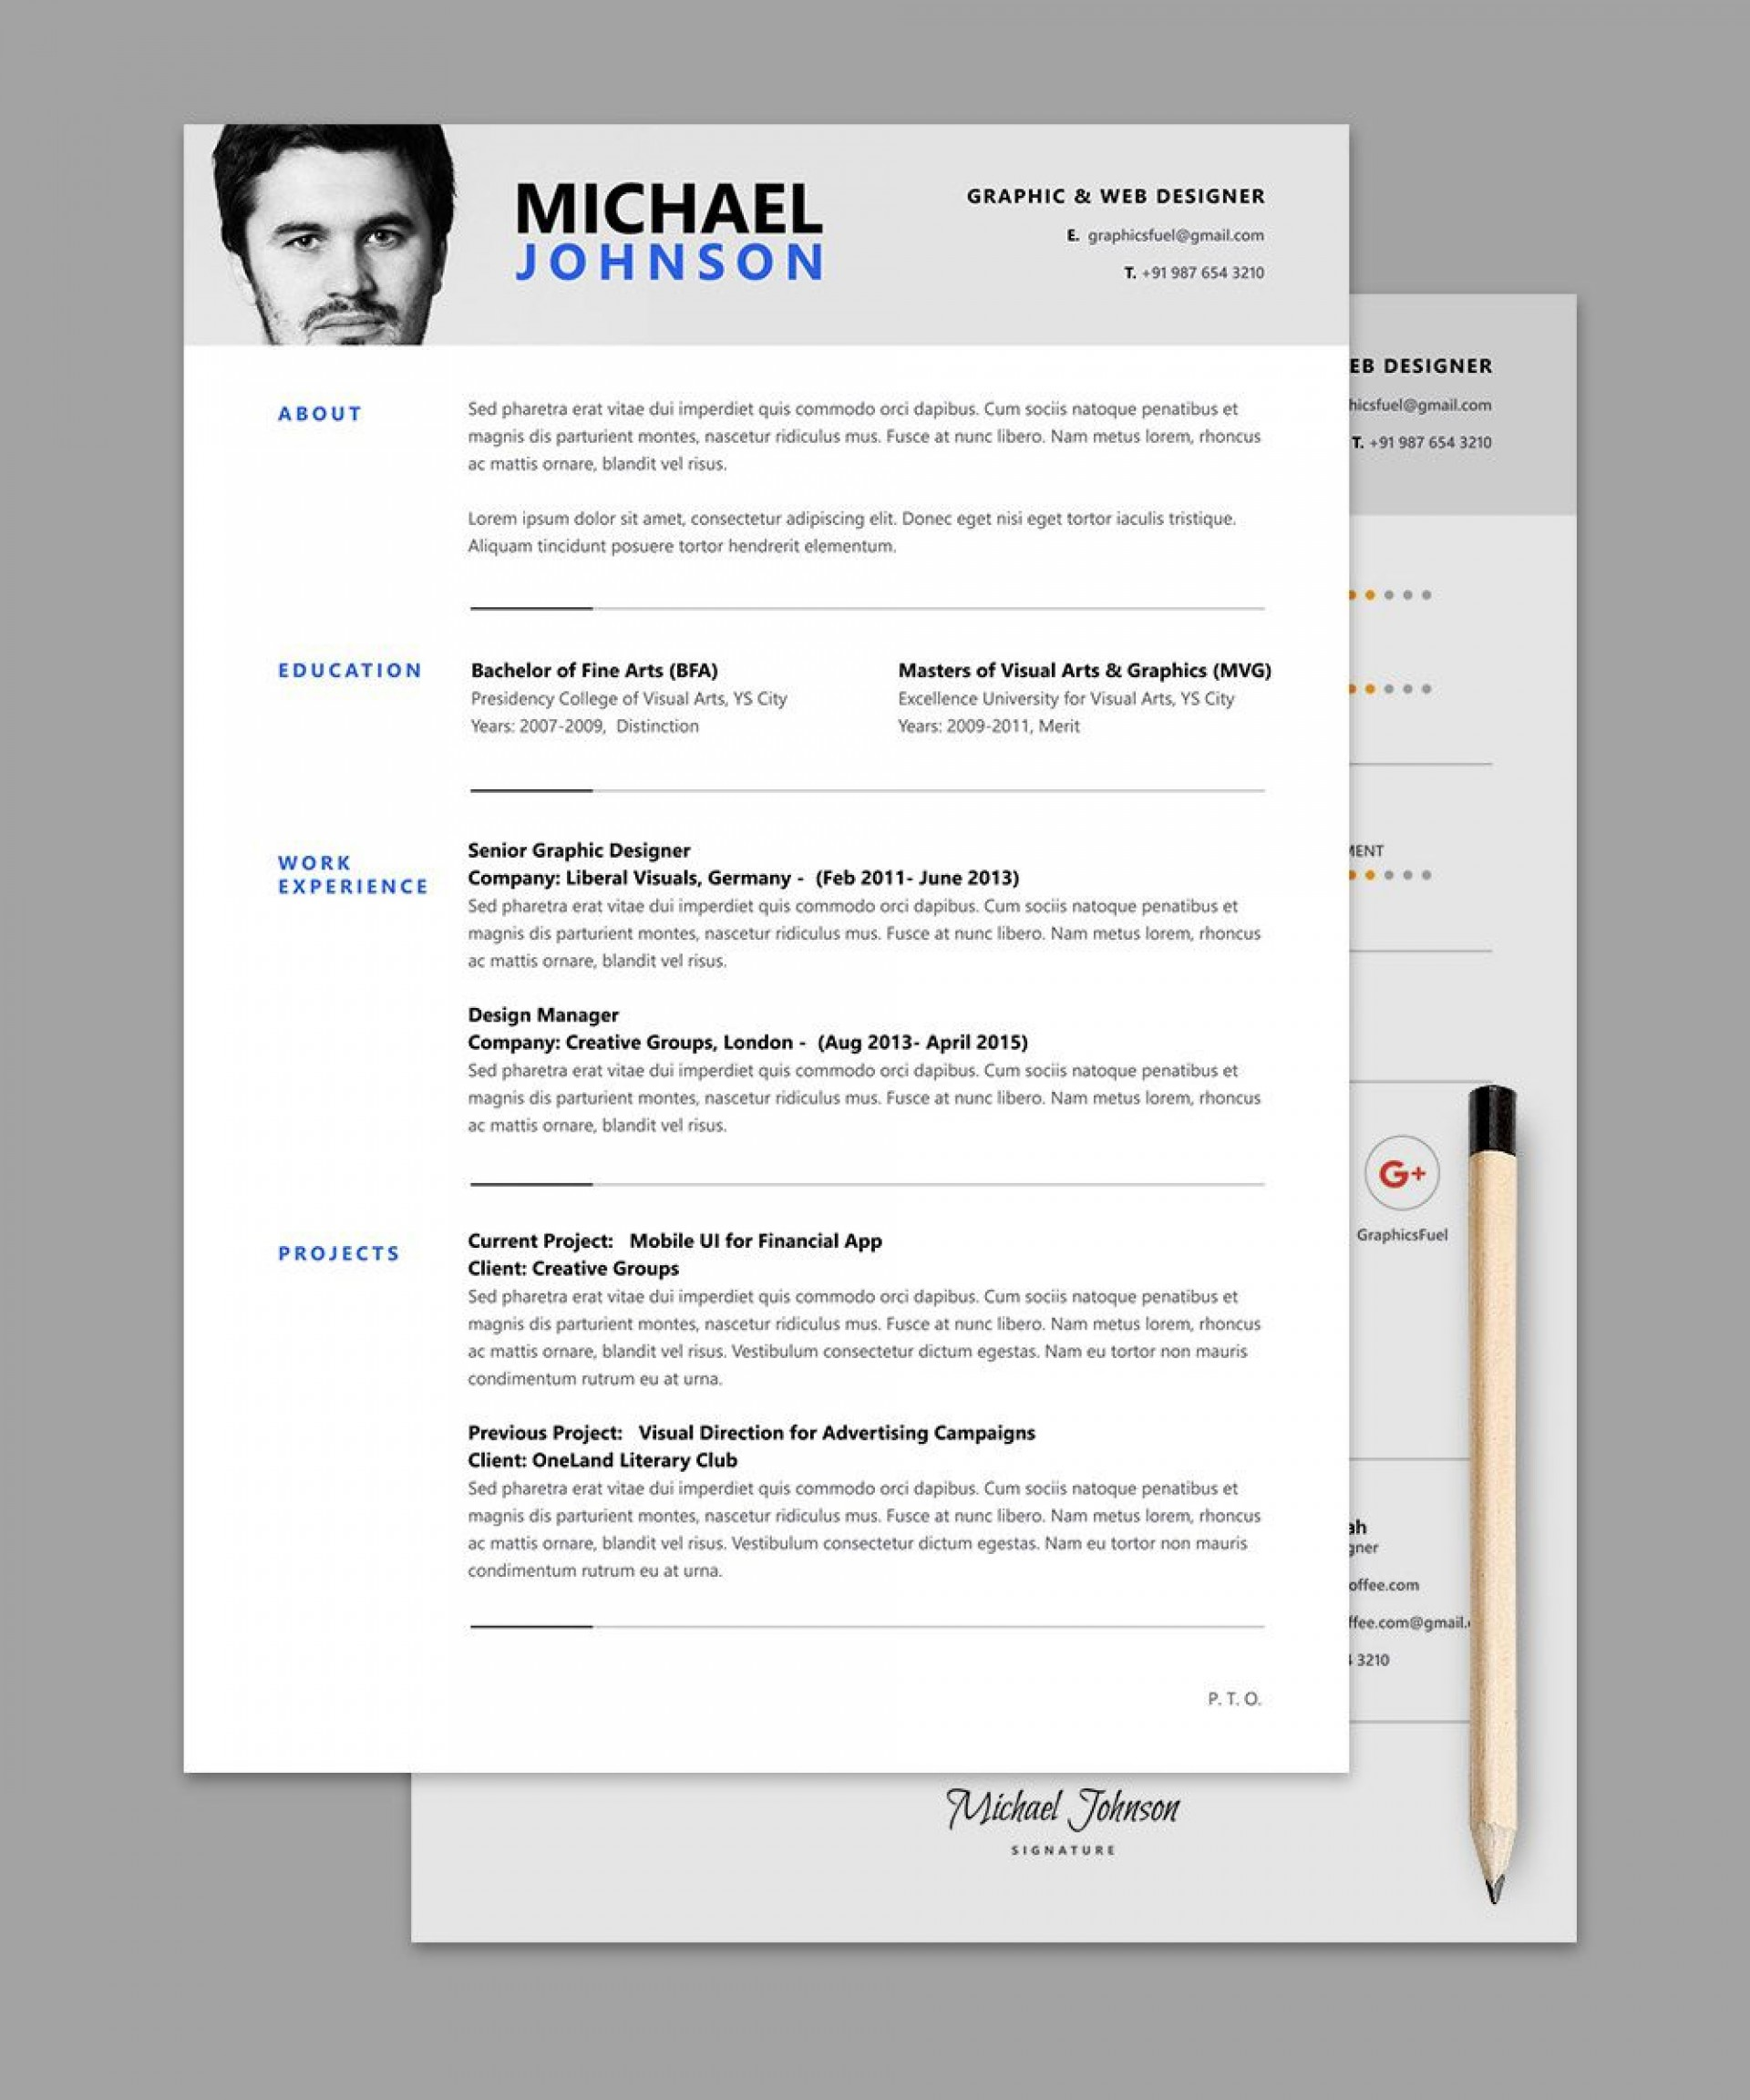 007 Fascinating Free Resume Template Microsoft Office Word 2007 High Def 1920